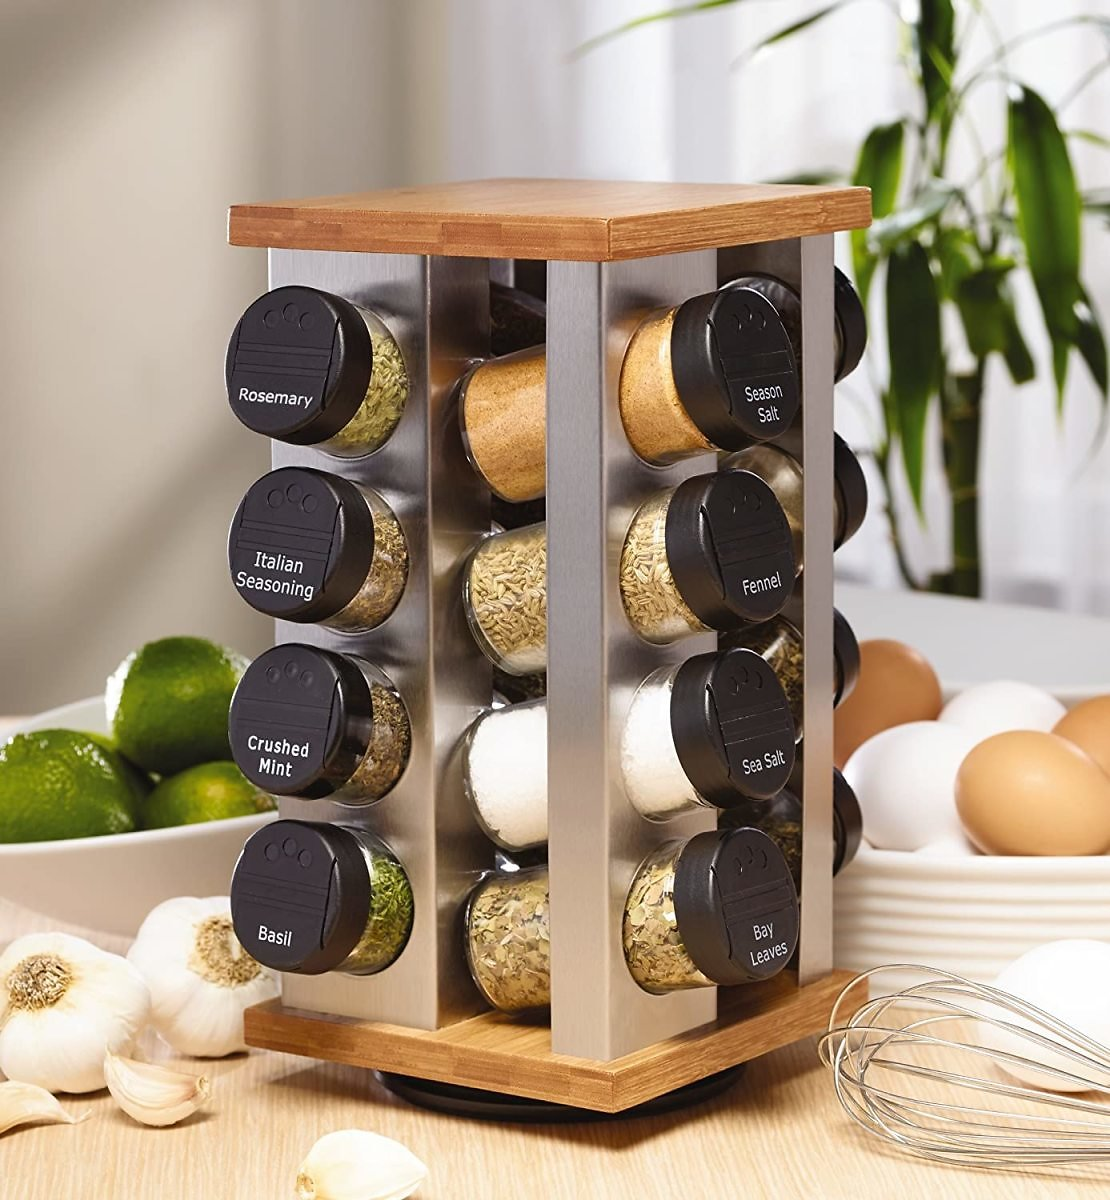 Kamenstein Warner 16-Jar Revolving Countertop Spice Rack Organizer with Free Spice Refills for 5 Years